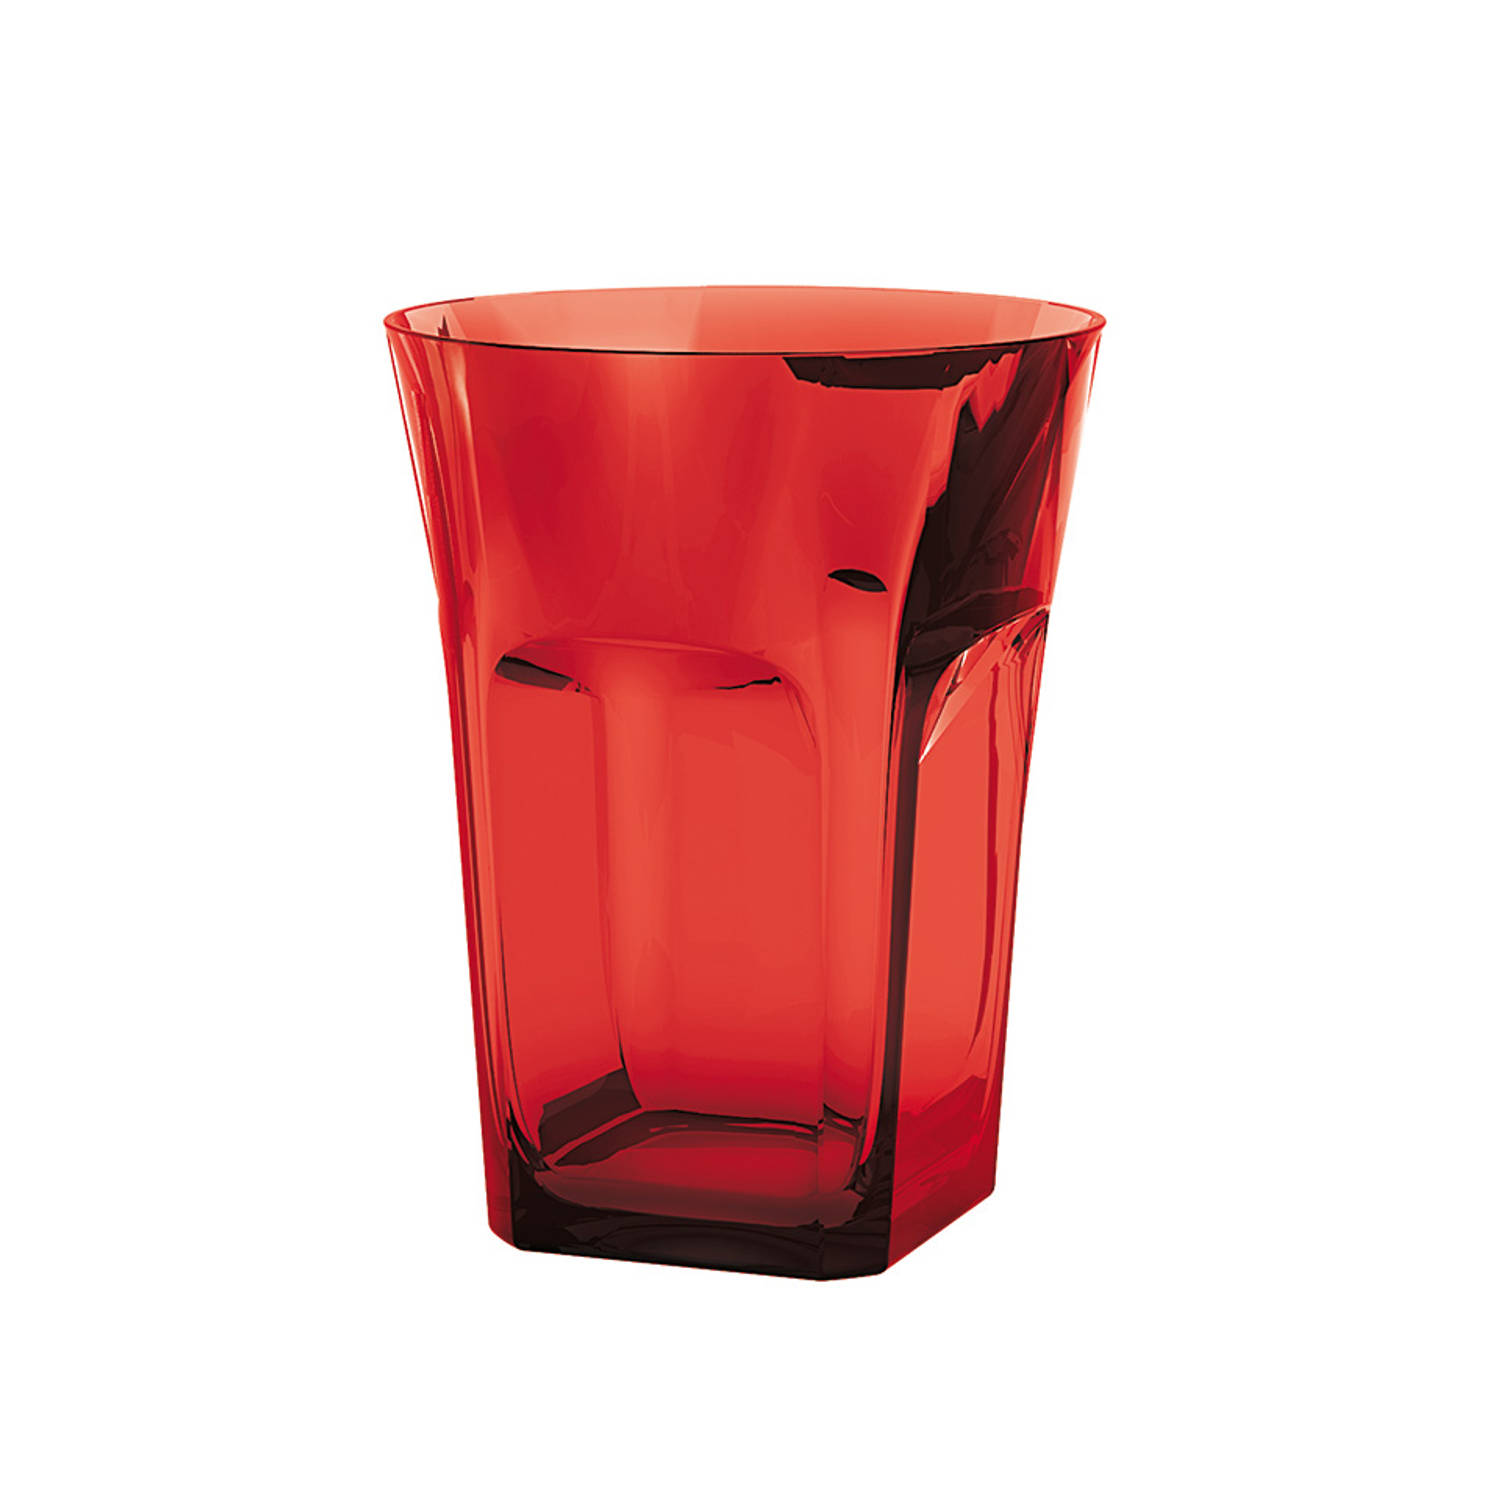 Guzzini Belle Epoque drinkglas - rood - 28 cl